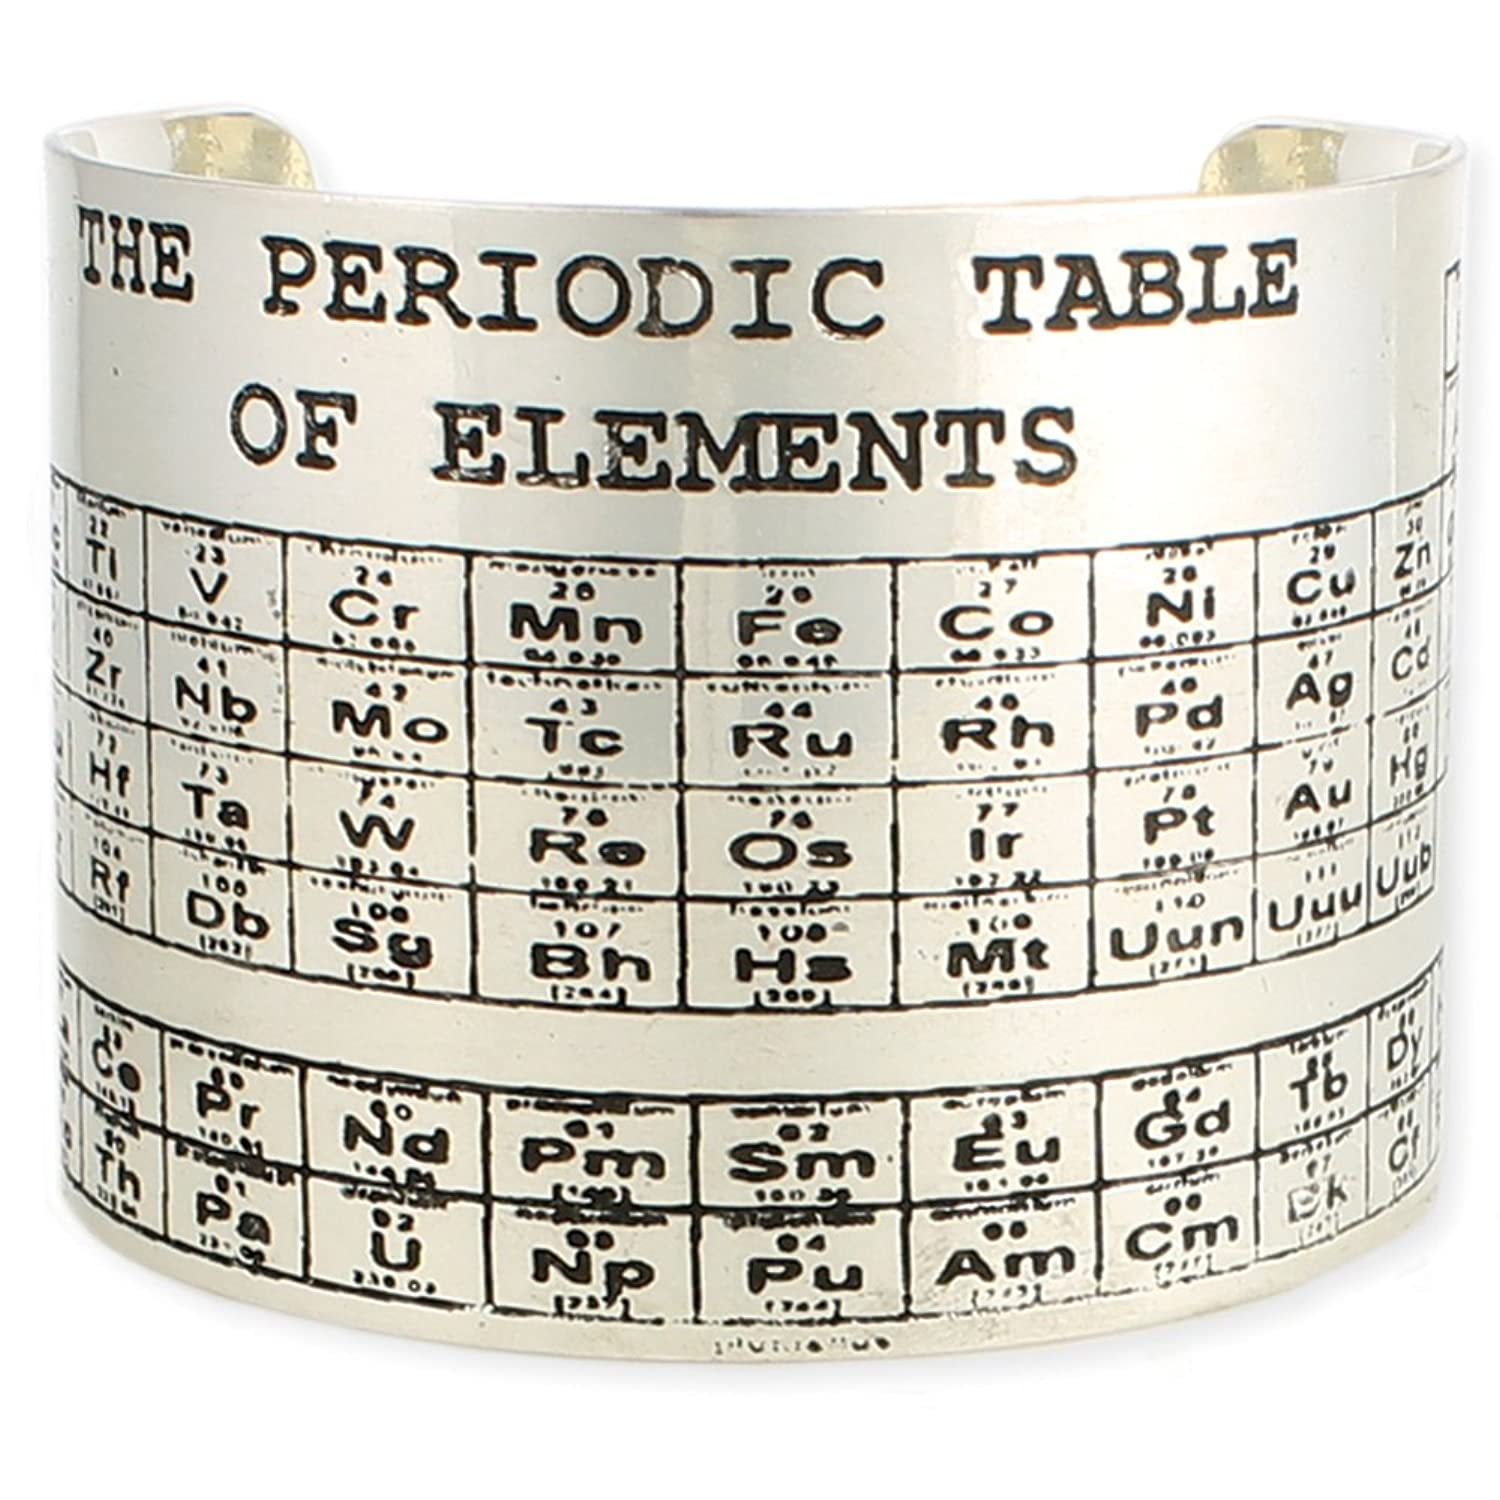 Amazon periodic table of elements cuff bracelet one size amazon periodic table of elements cuff bracelet one size fits most jewelry gamestrikefo Gallery